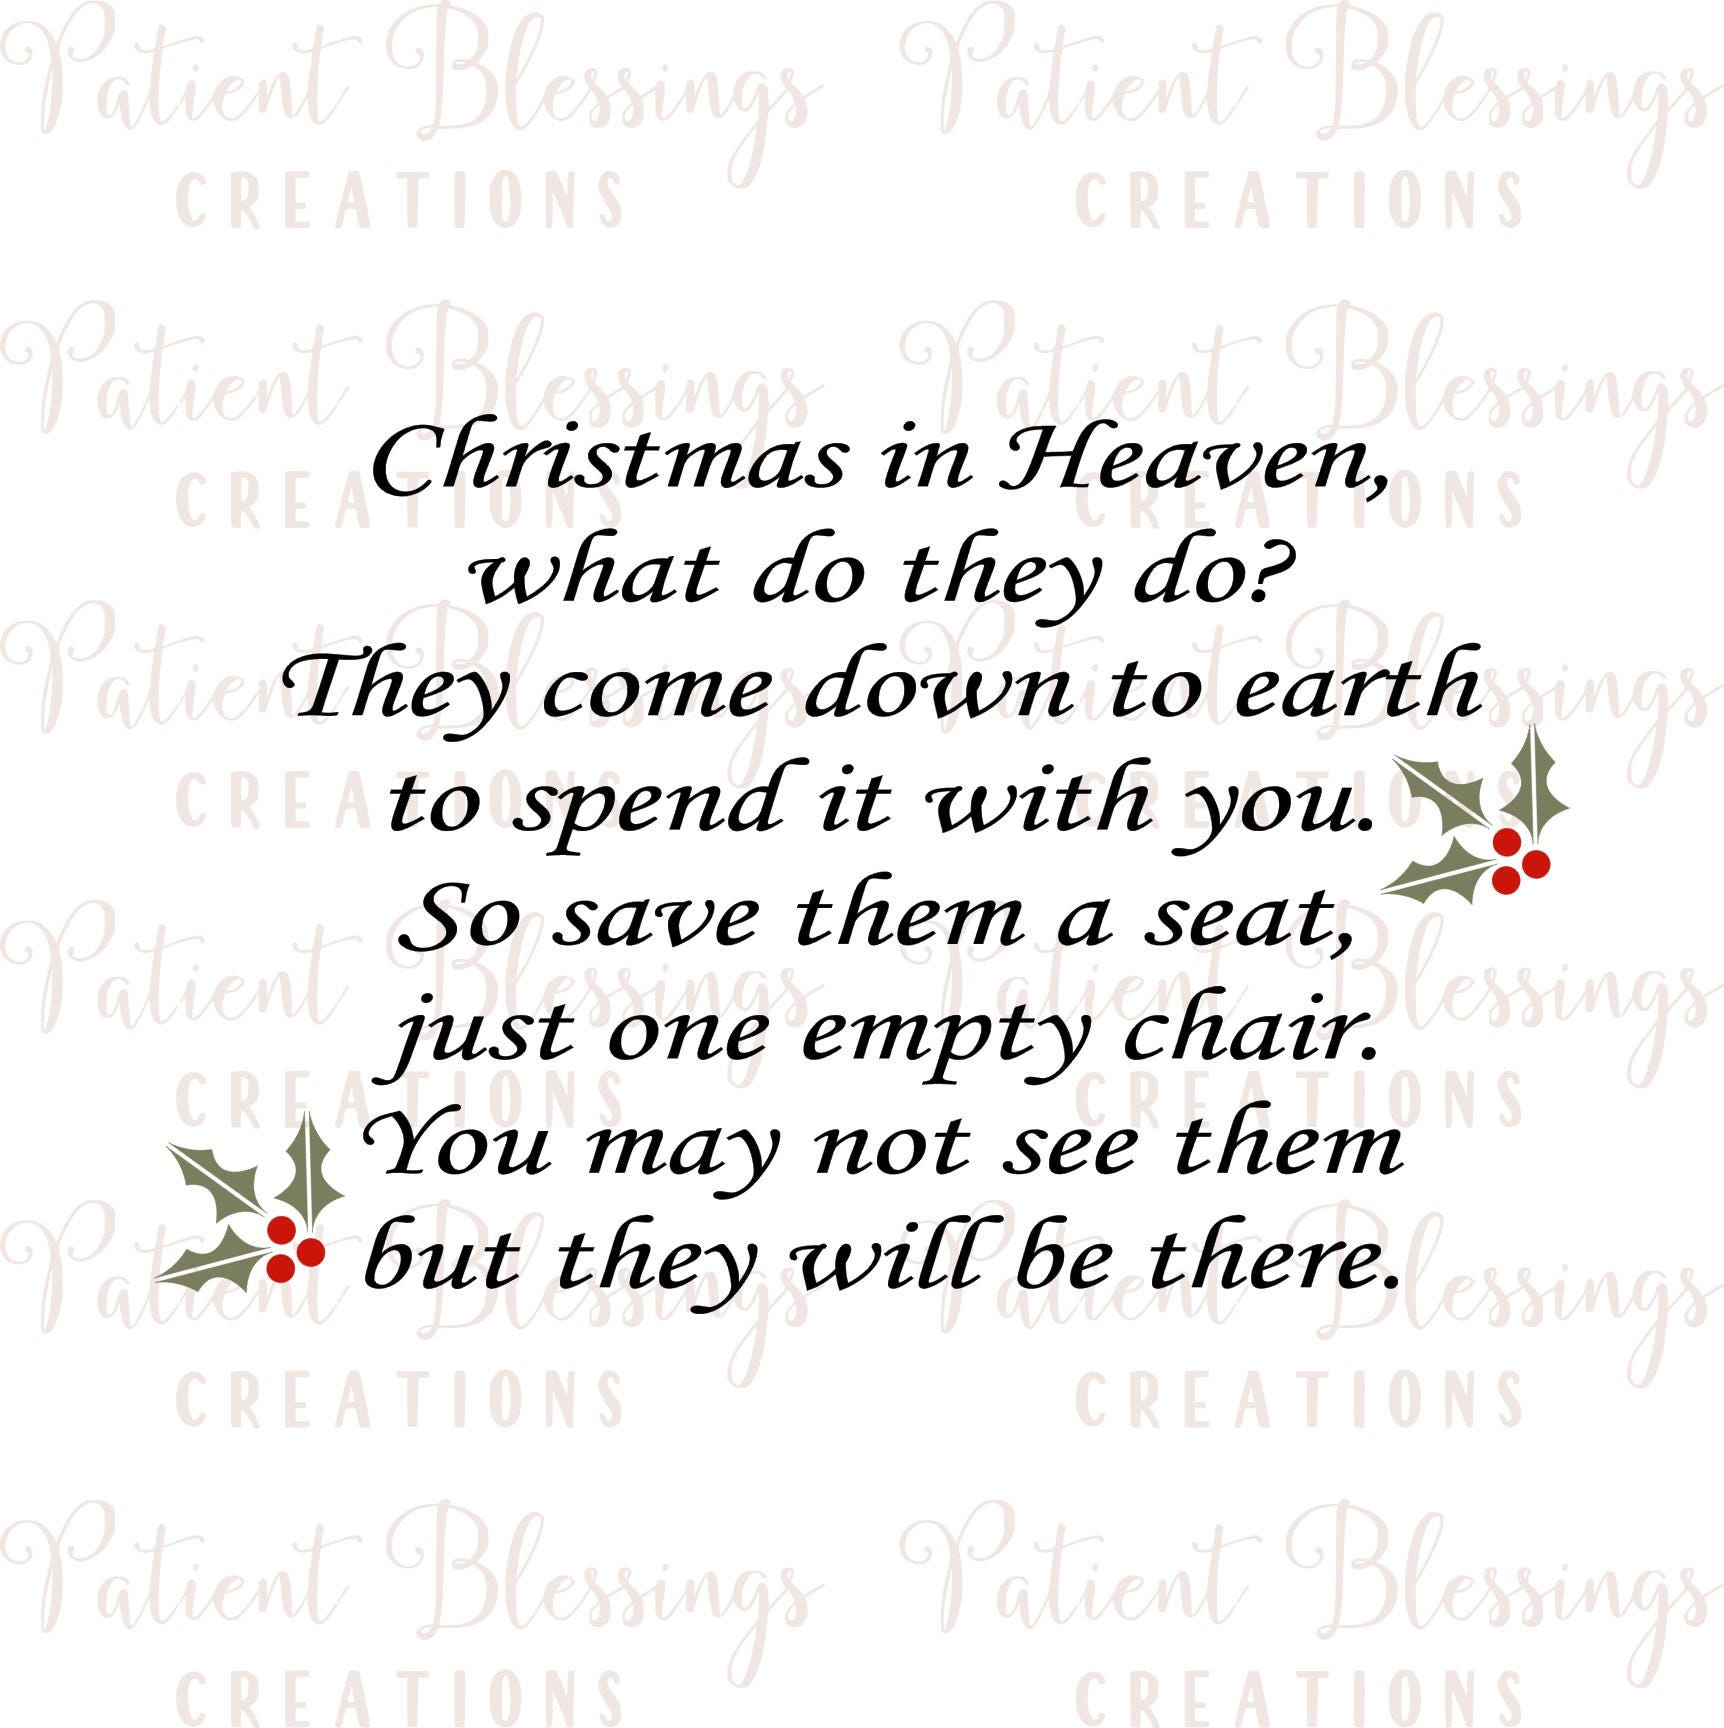 christmas in heaven what do they do they come down to earth to spend it with you so save them a seat just one empty chair svg pdf eps